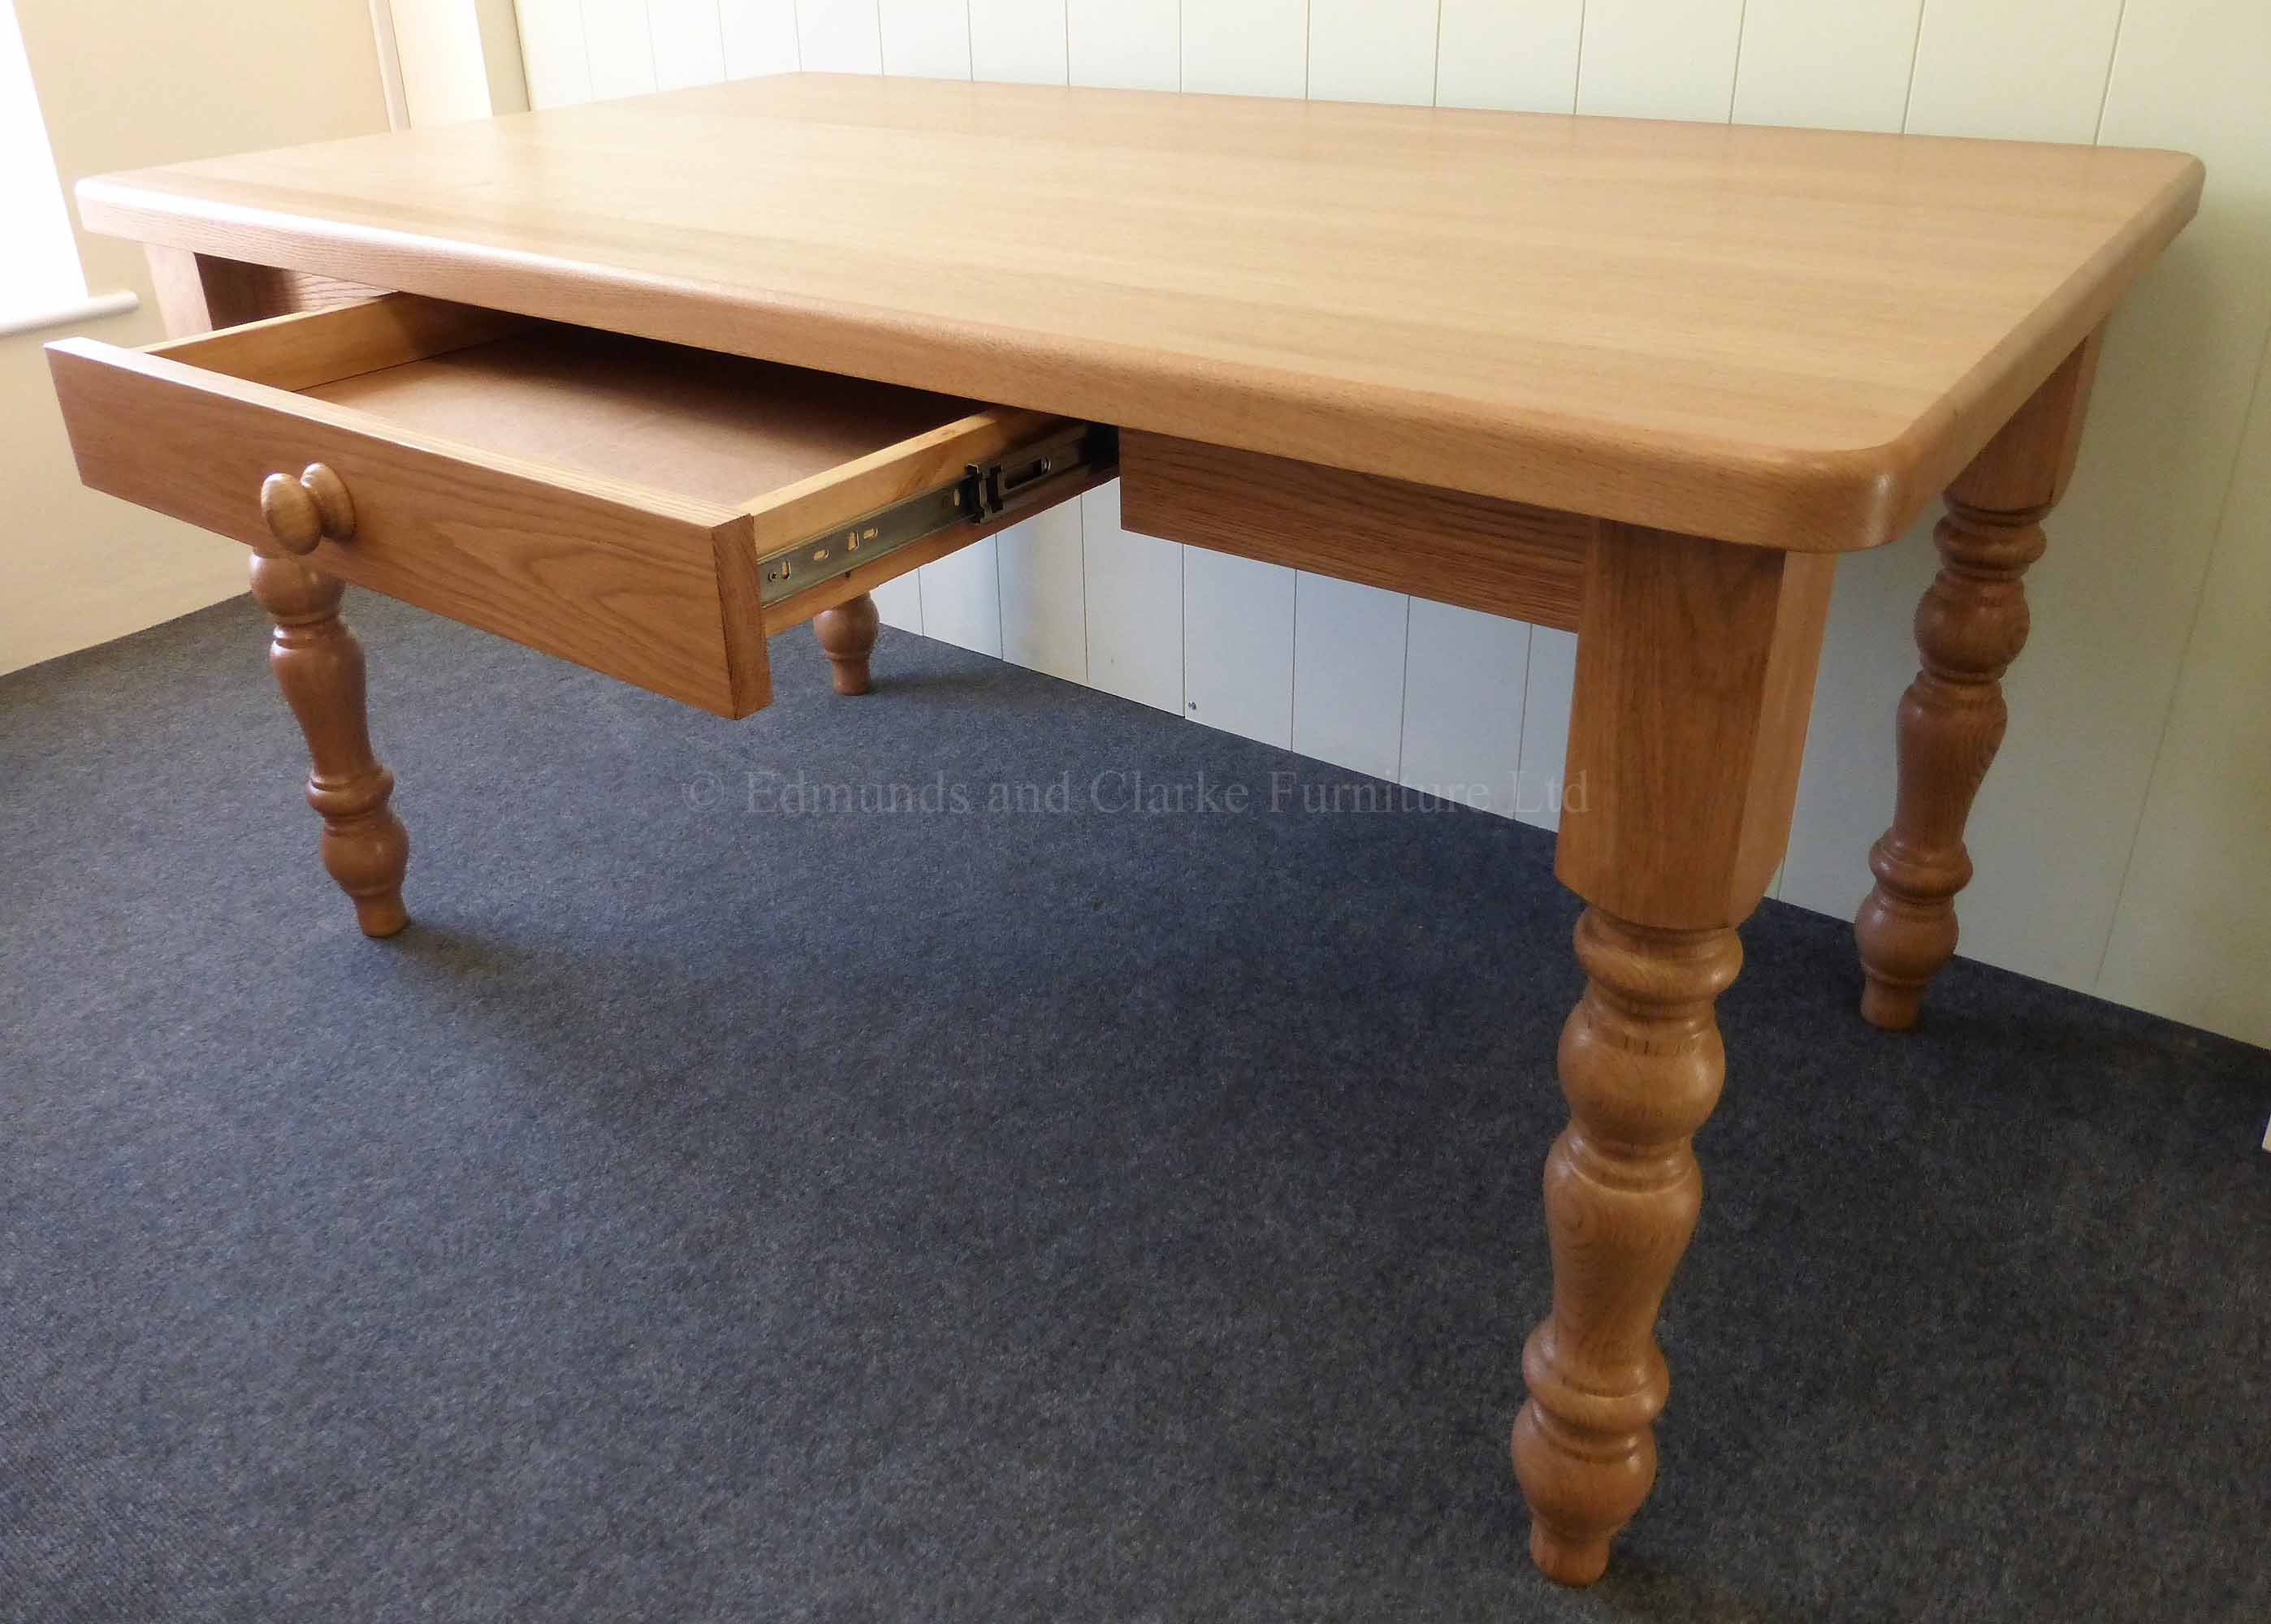 Edmunds Farmhouse solid oak table with turned legs and drawer in side